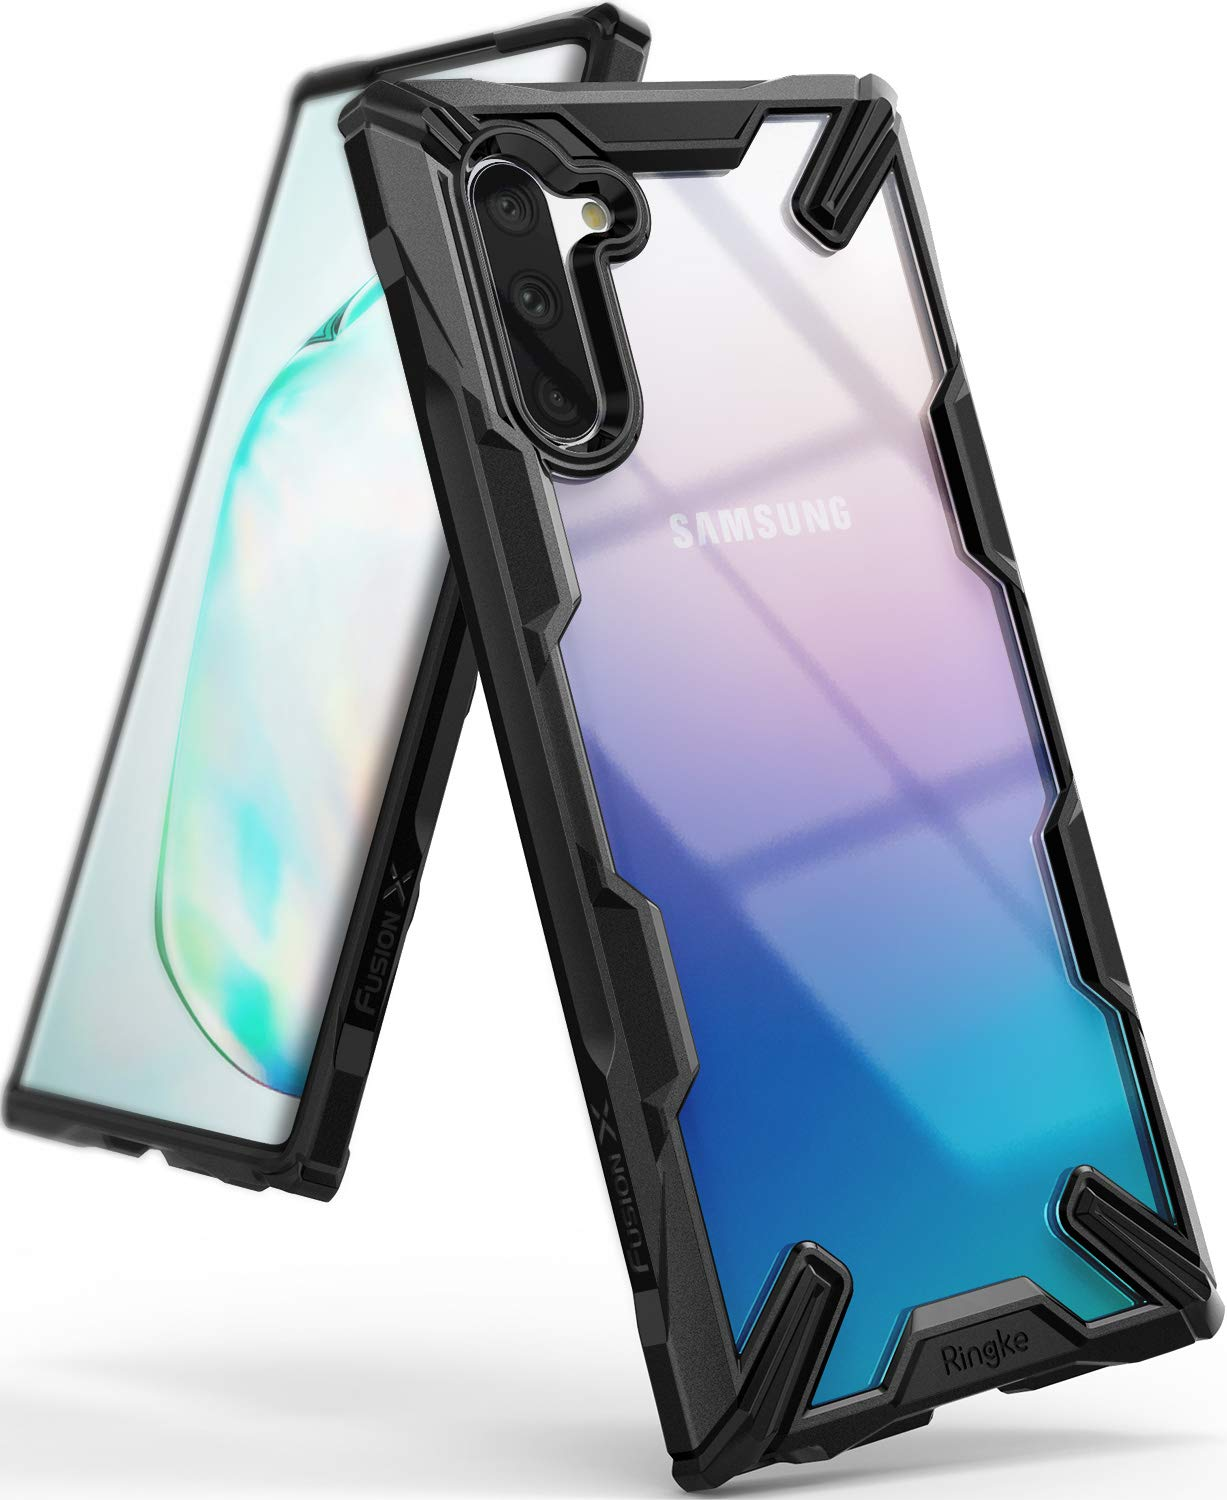 Galaxy Note 10 Cover by Ringke